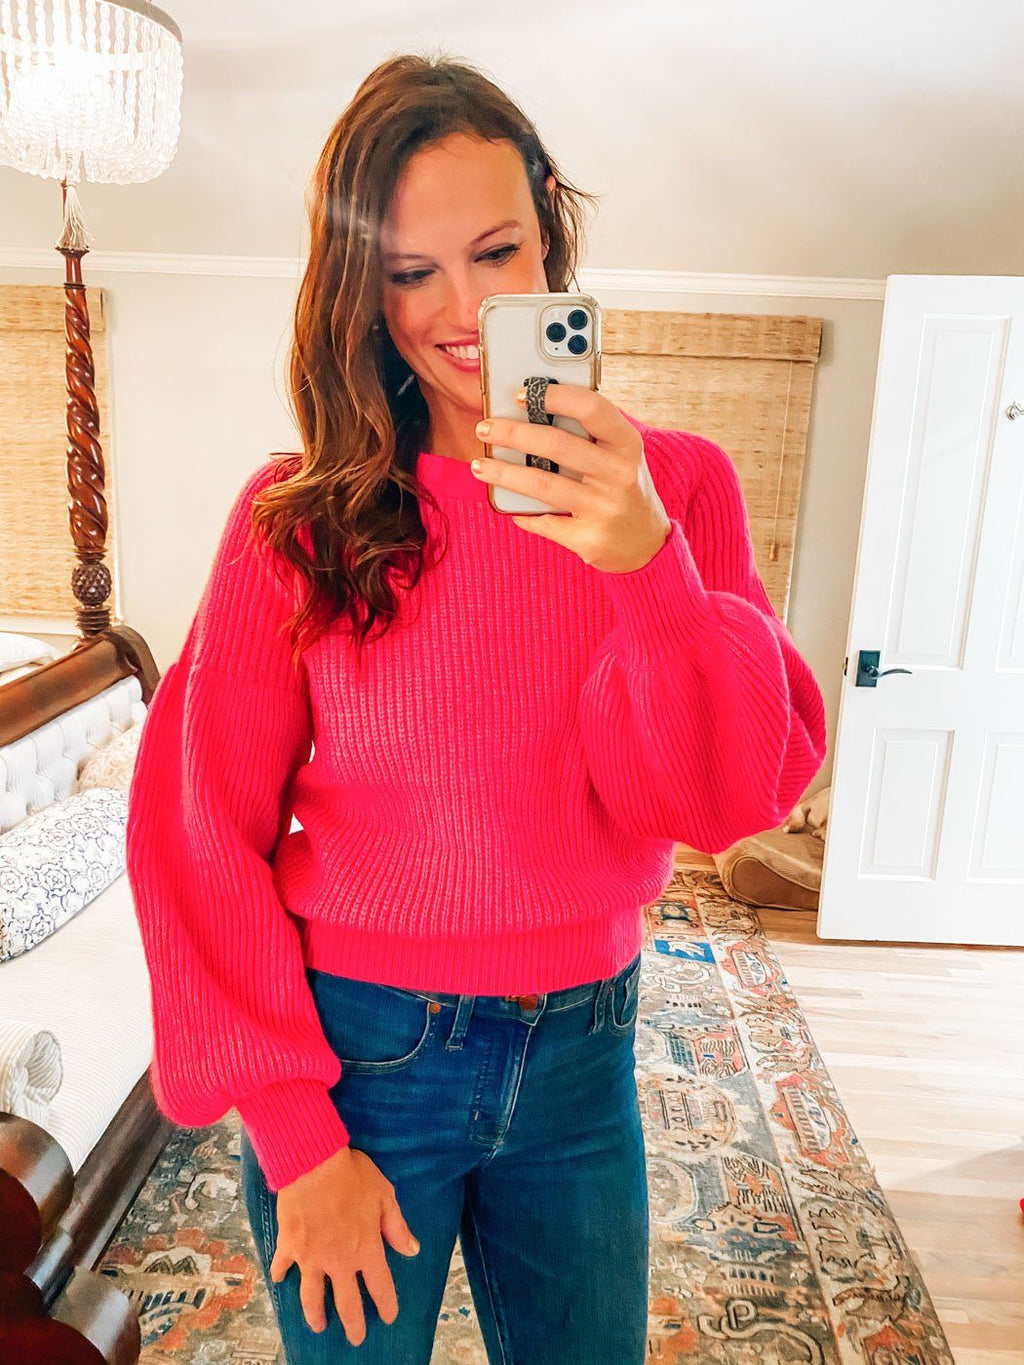 Barbie Girl Fuchsia Puff Sleeve Sweater - Caroline Hill